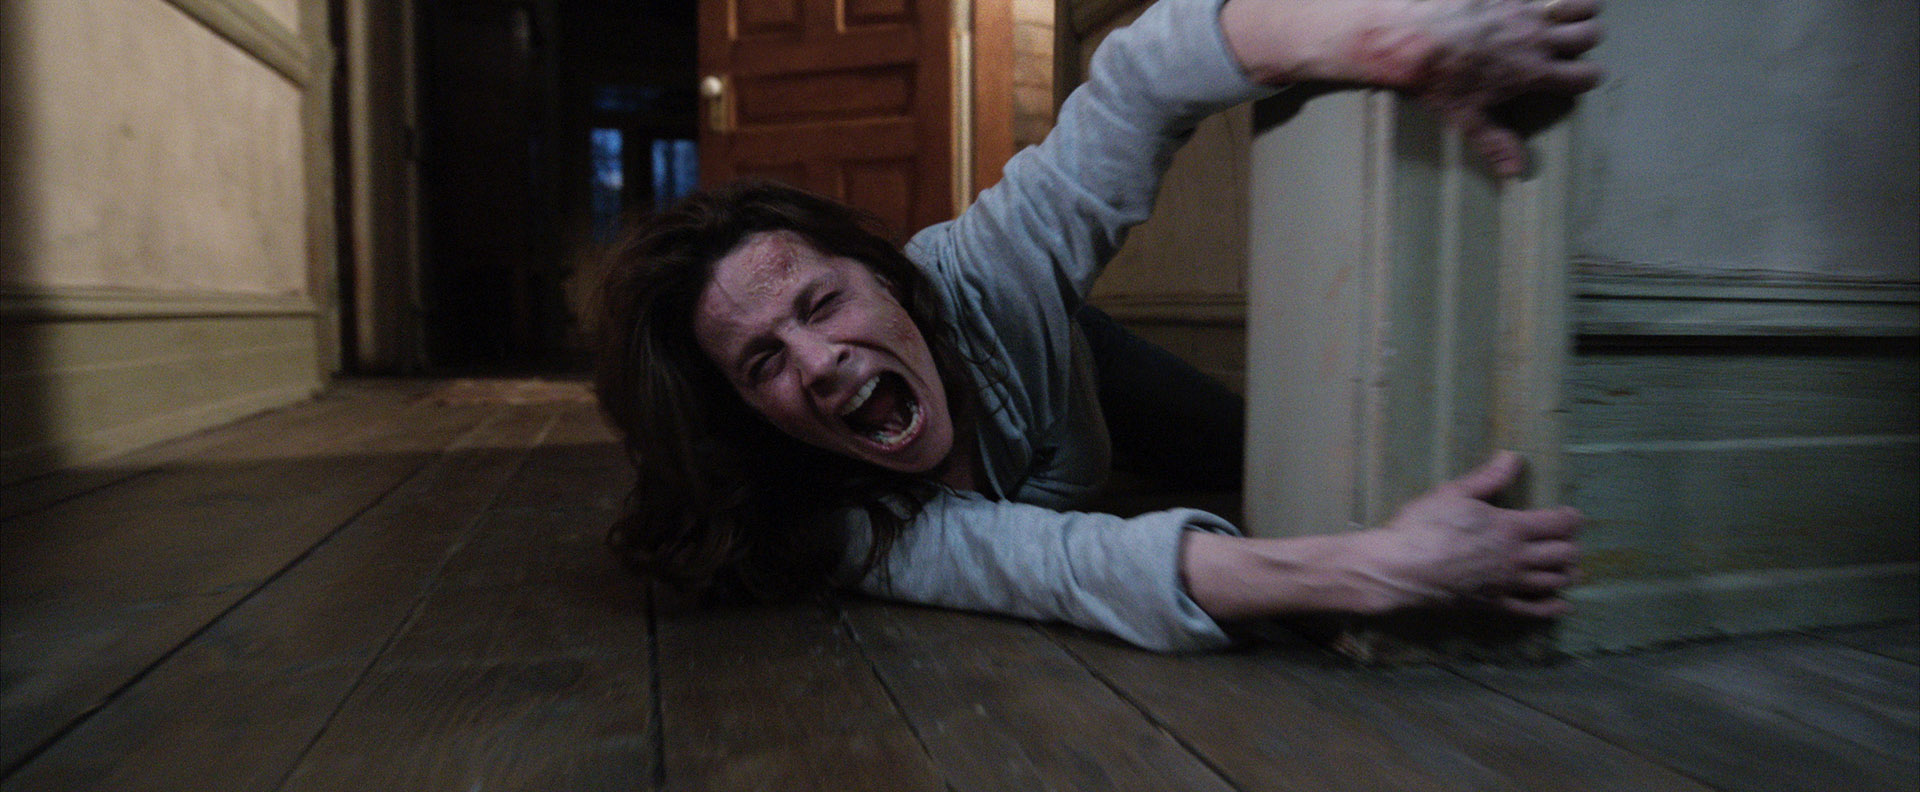 THE-CONJURING-dragged-carolyn-perron-mom